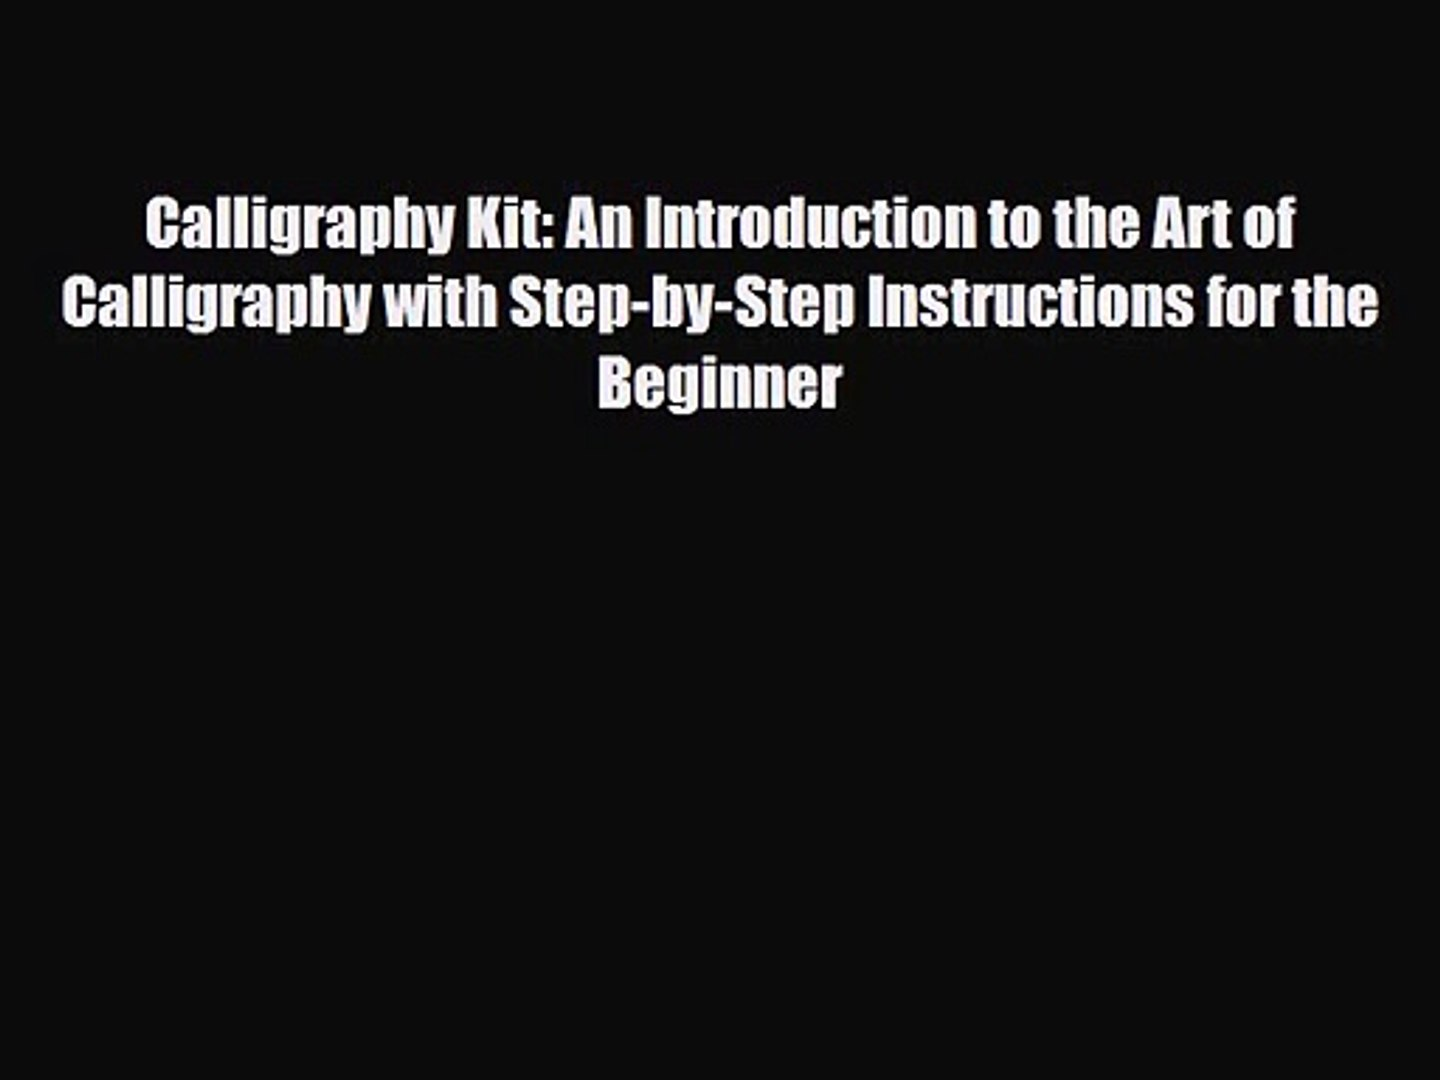 [PDF Download] Calligraphy Kit: An Introduction to the Art of Calligraphy with Step-by-Step